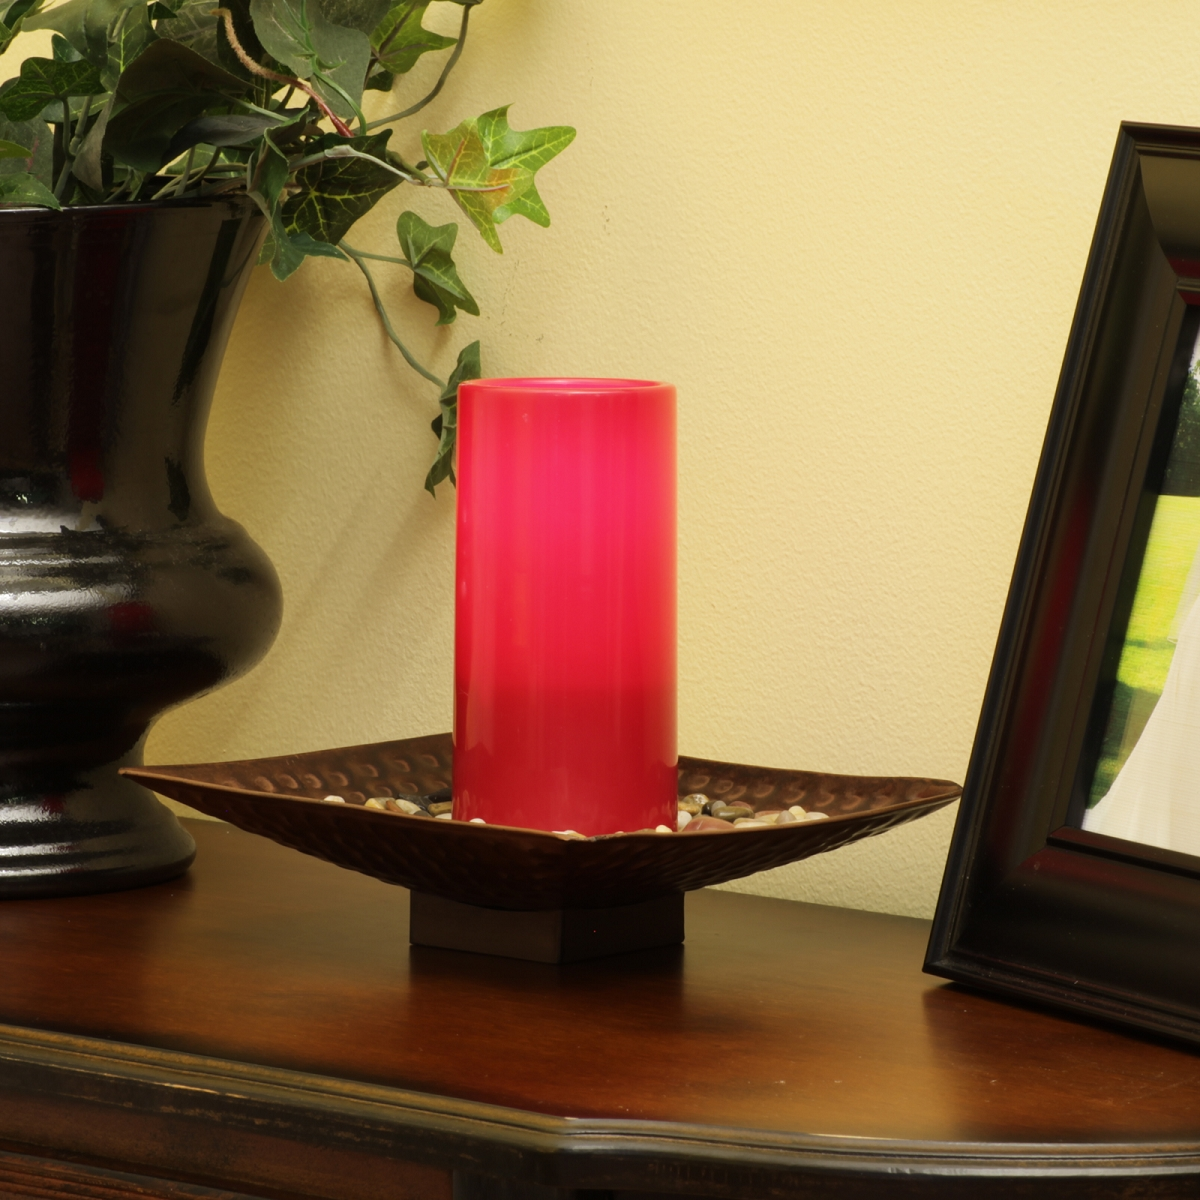 Pacific Accents Colored Flameless Resin Pillar Candles